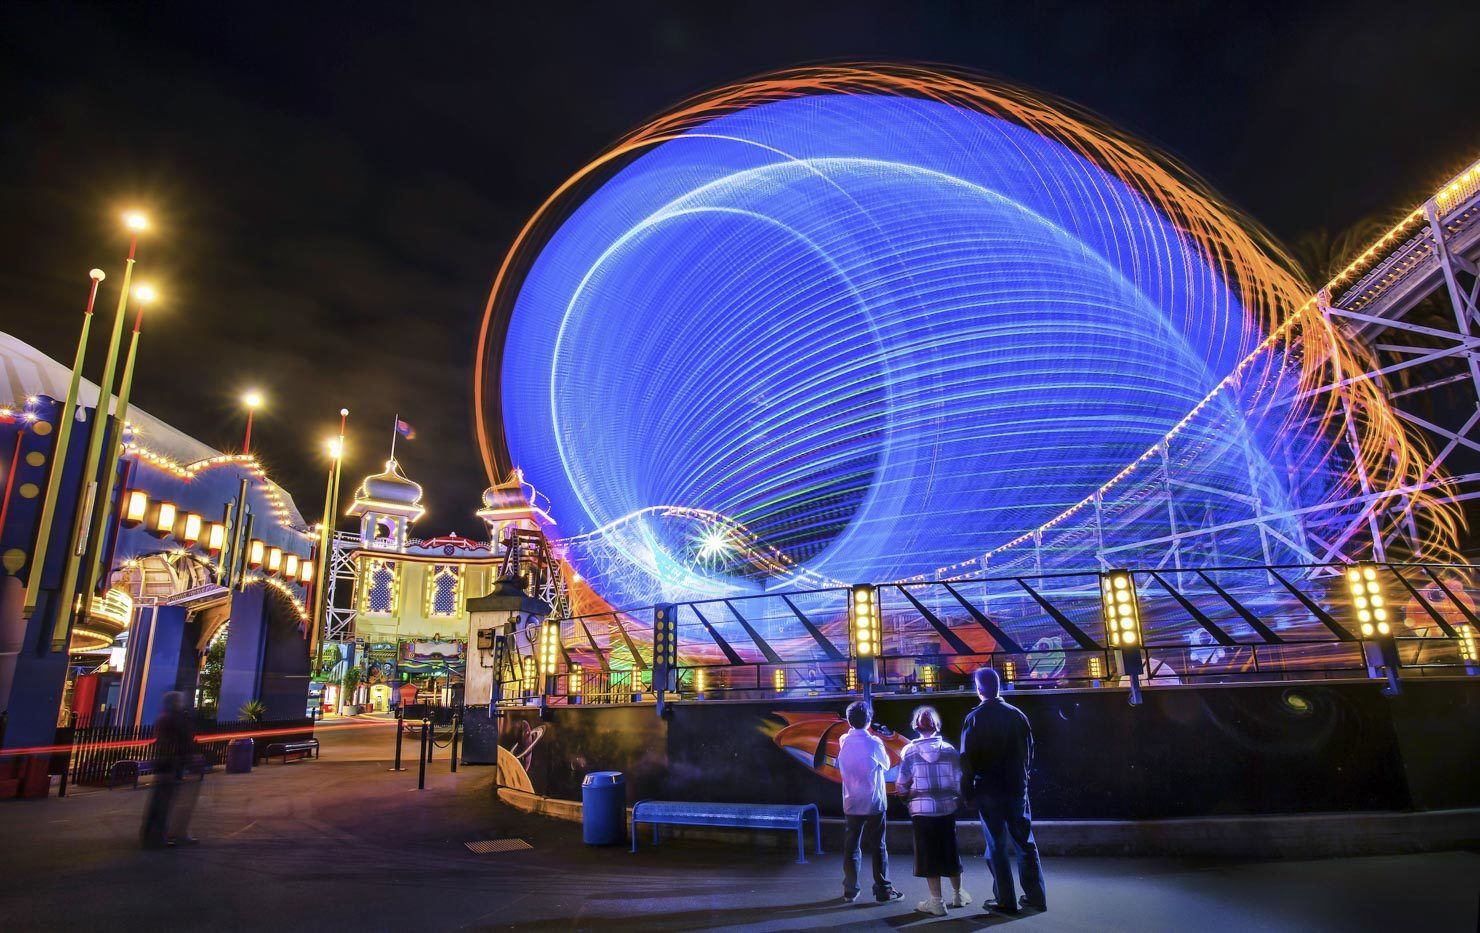 Luna Park at night, twilight